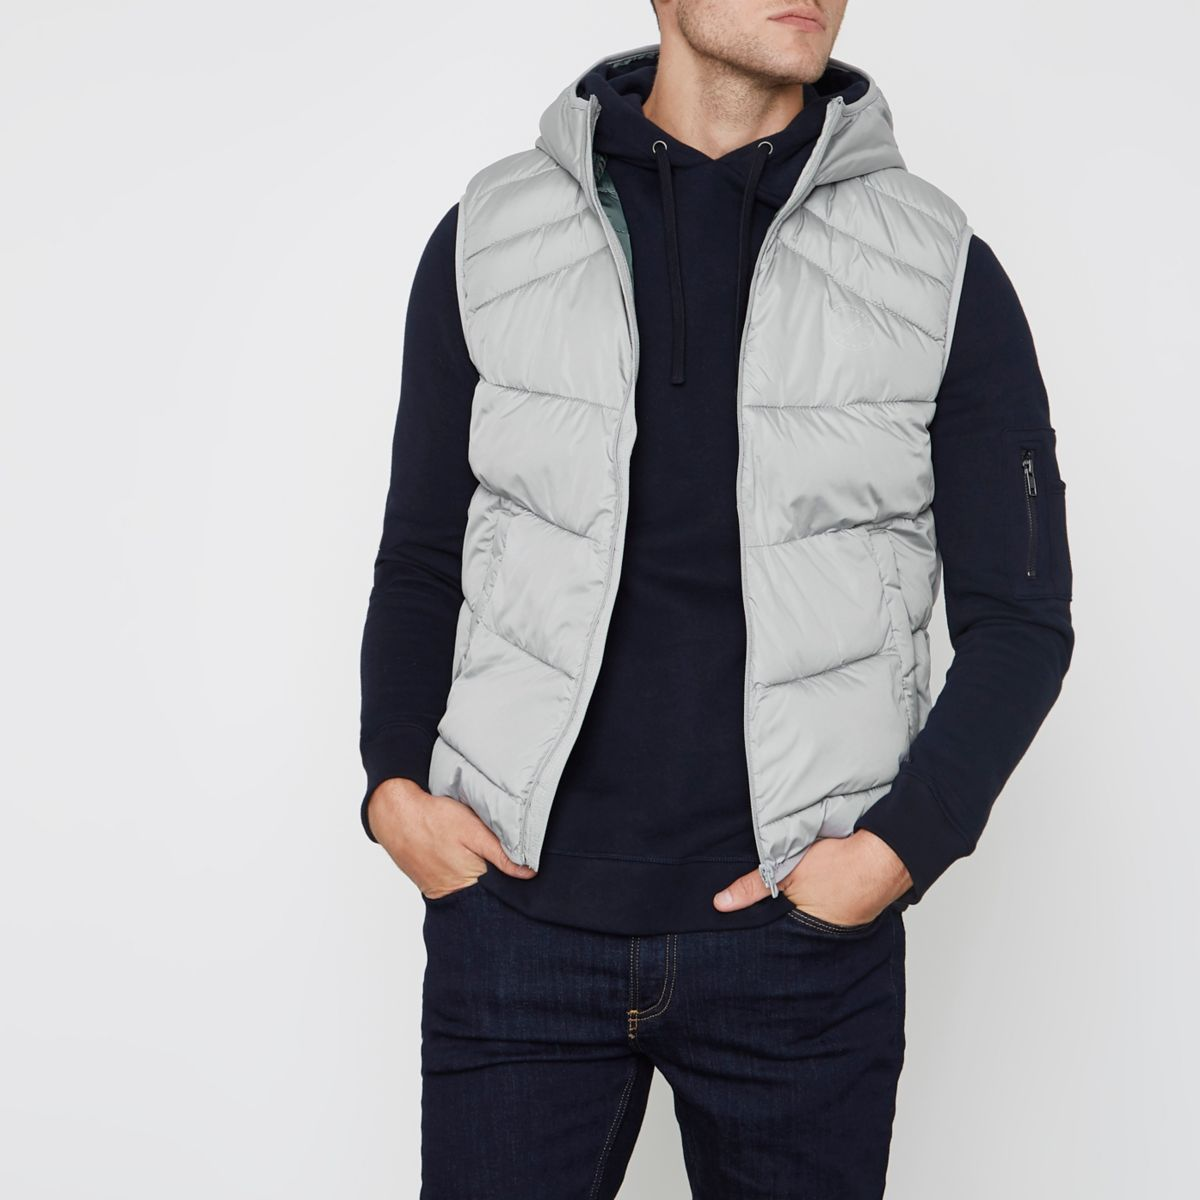 Jack & Jones grey hooded puffer gilet